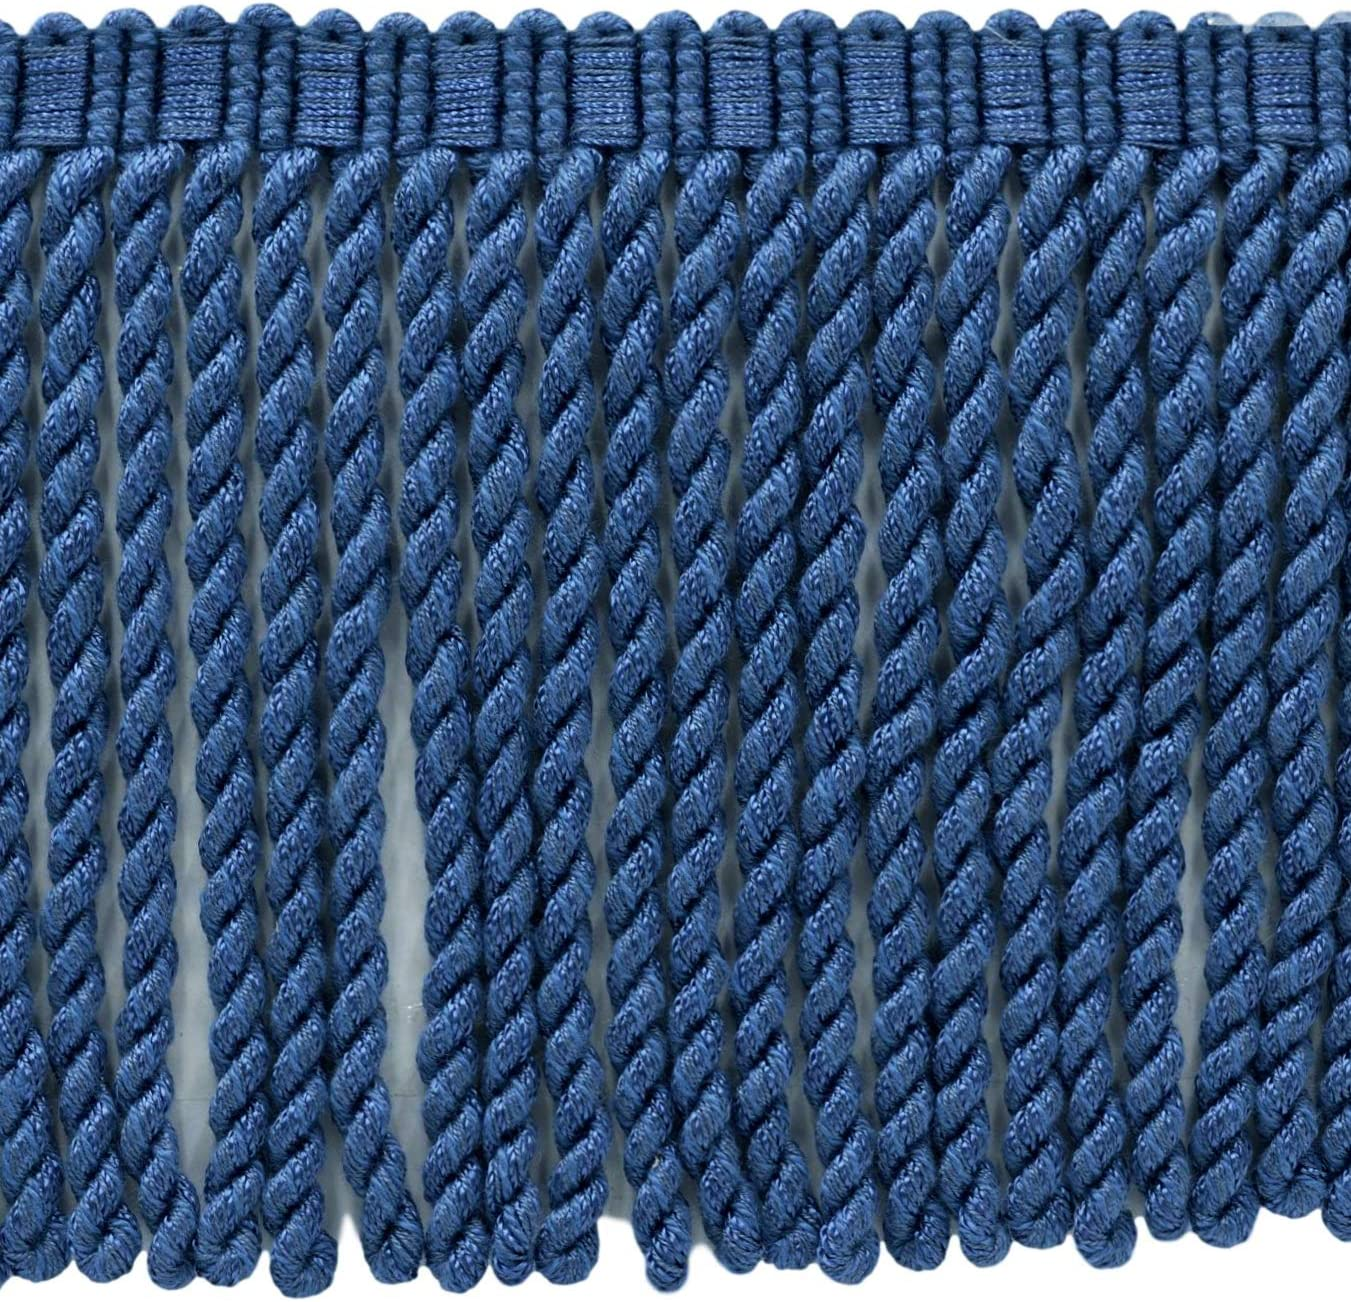 M45|Sold by The Yard D/ÉCOPRO 6 Inch Long|French Blue Bullion Fringe Trim|Style# BFSCR6|Color